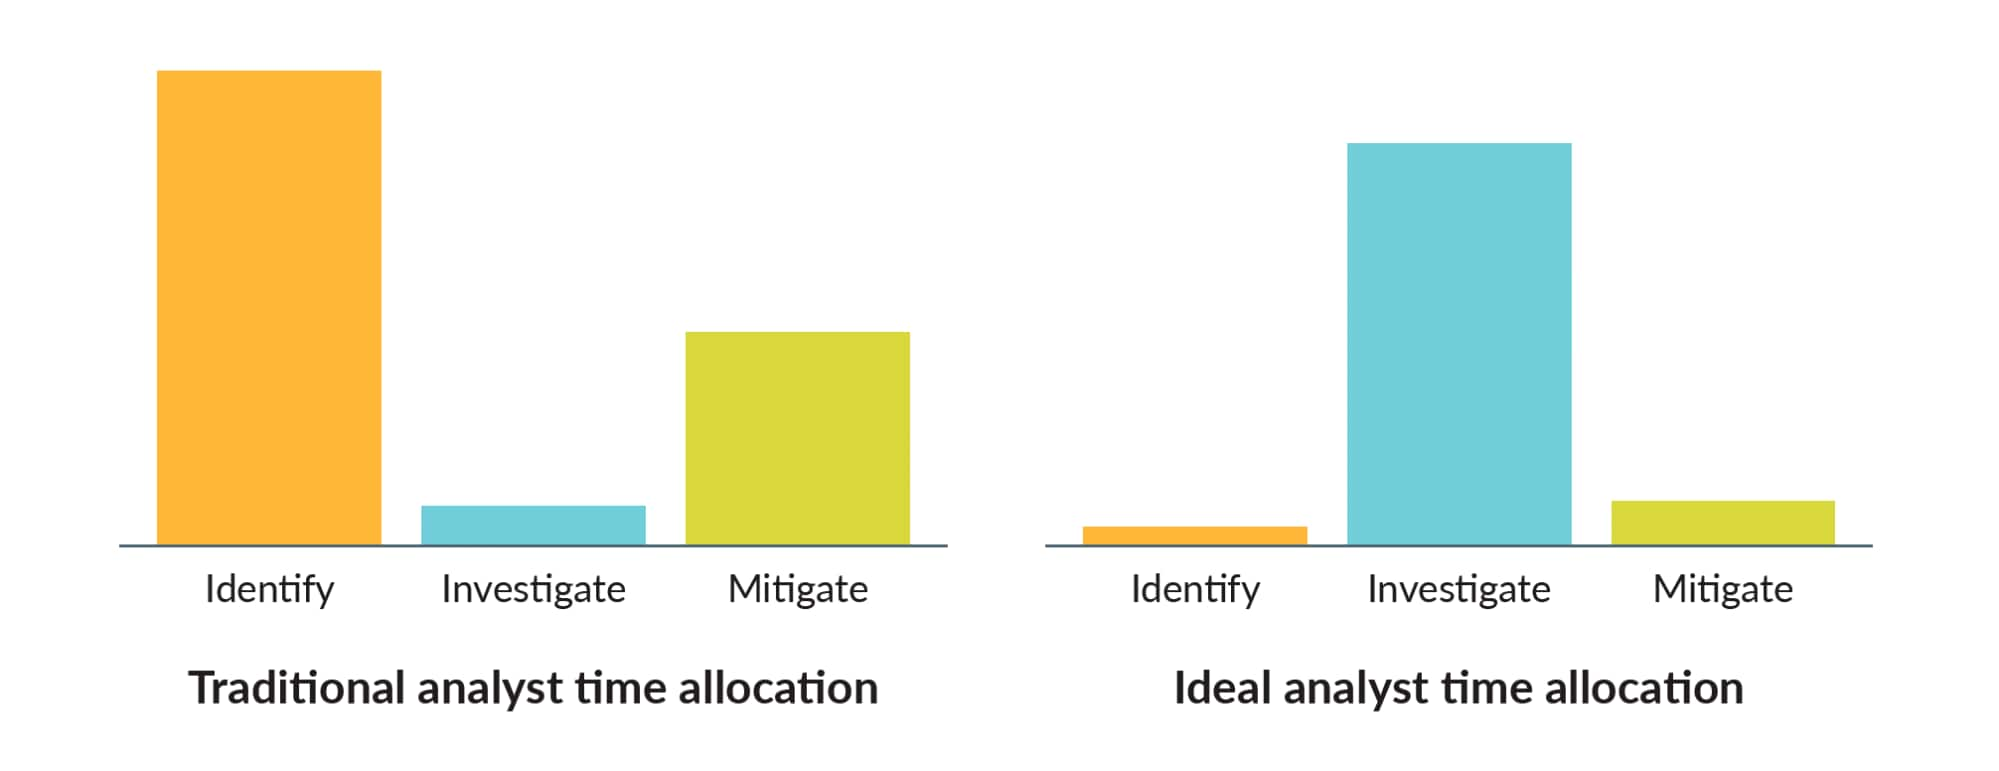 Incident response is broken out into three stages: Threat identification, investigation, and mitigation. Analysts traditionally spend most of their time in the identification and mitigation phases. In the ideal state, they'd spend most of their time in the middle investigation phase, where their expertise offers the most value.